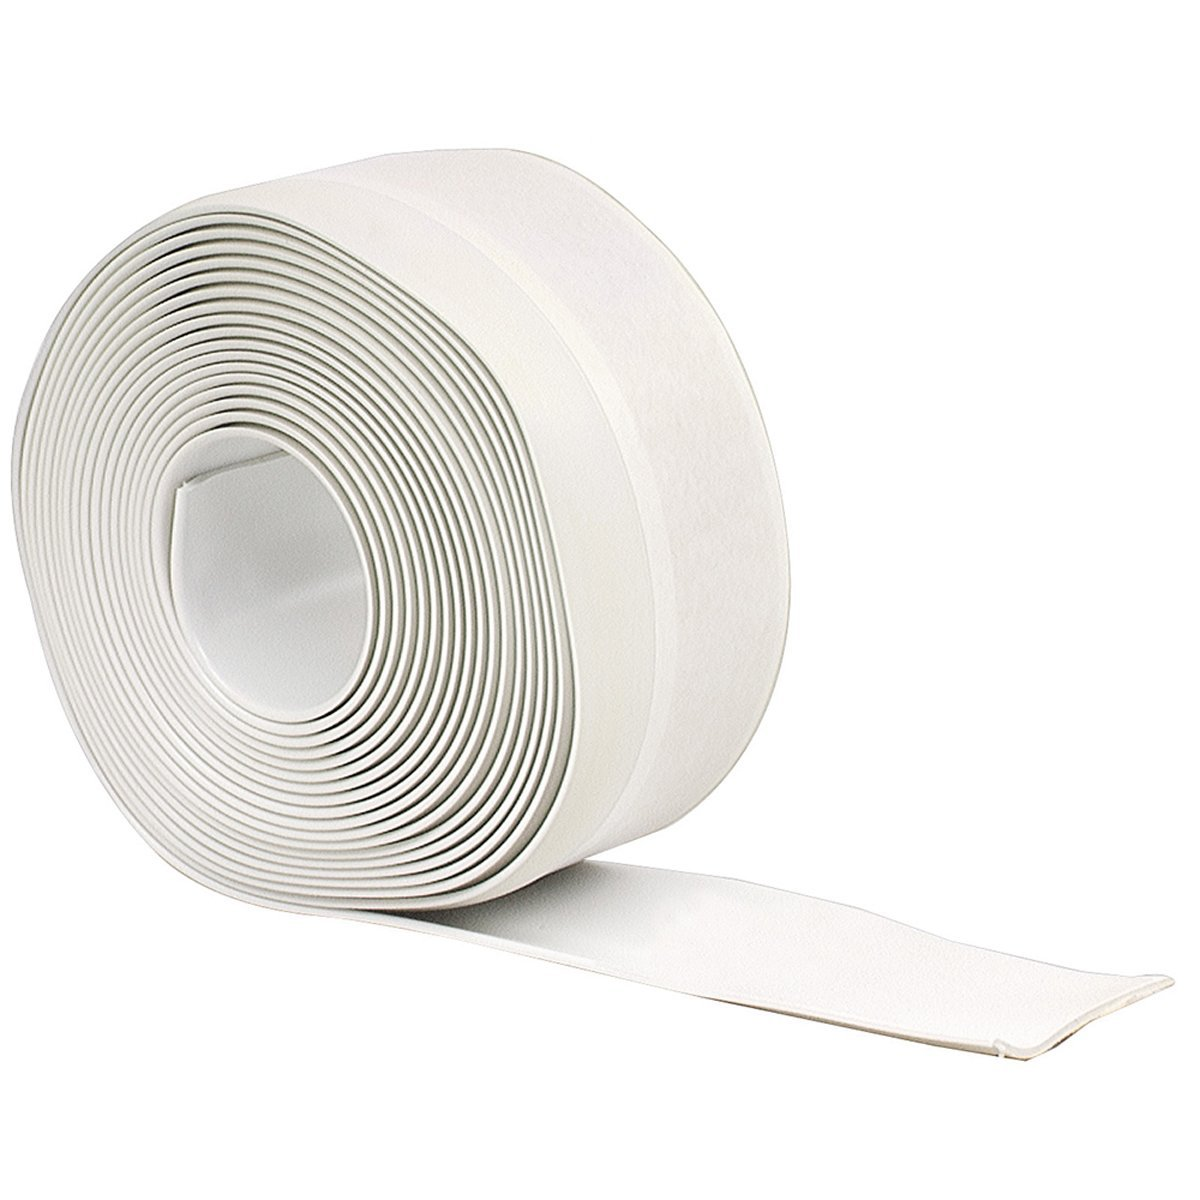 "M-D® Building 65770 Adhesive Back Vinyl Cove Wall Base Roll, 2-1/2"" x 20', White"